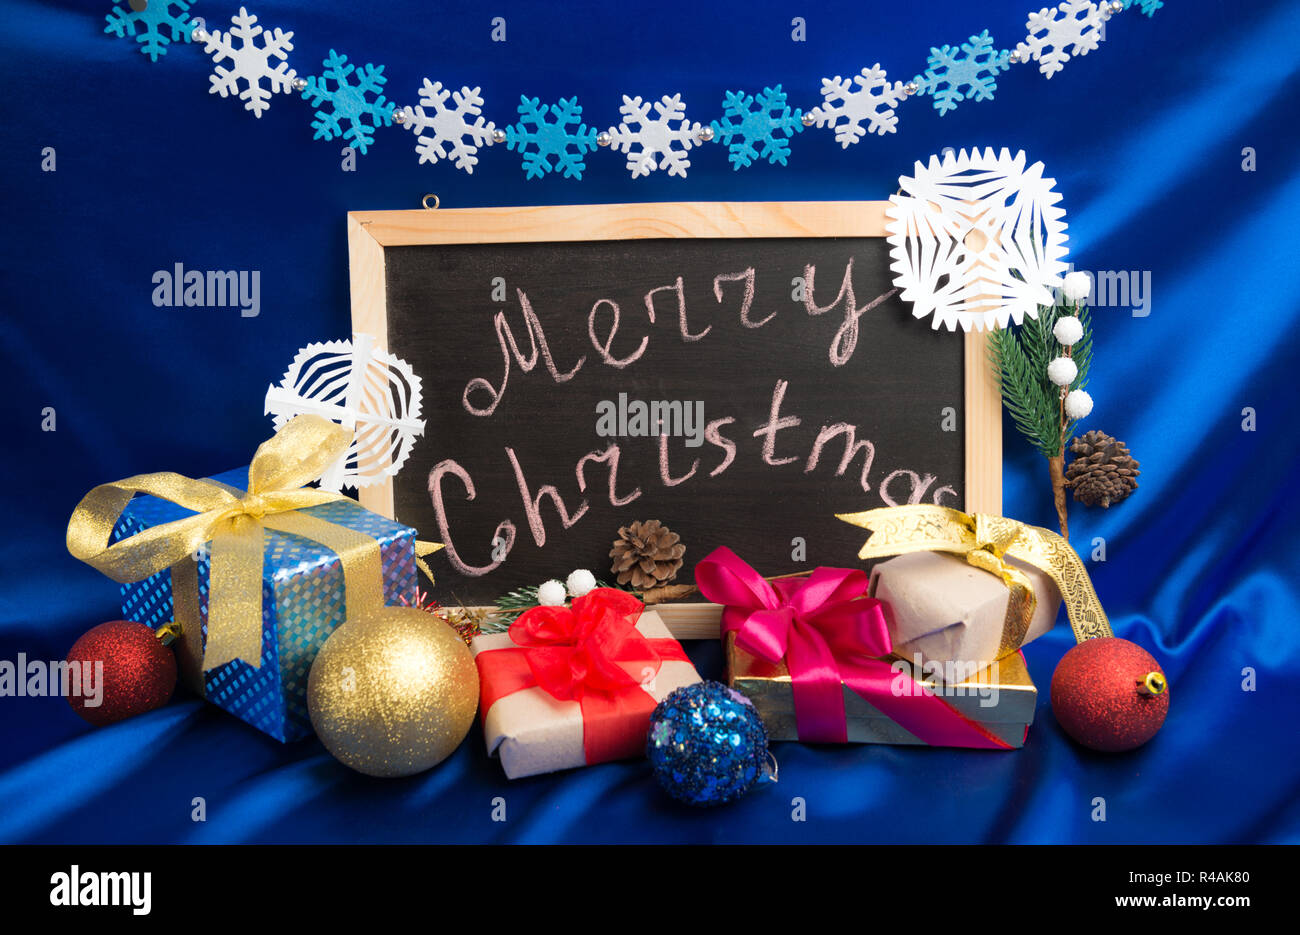 Christmas greeting at chalkboard around gift boxes and evergreen decorations on blue silk background - Stock Image